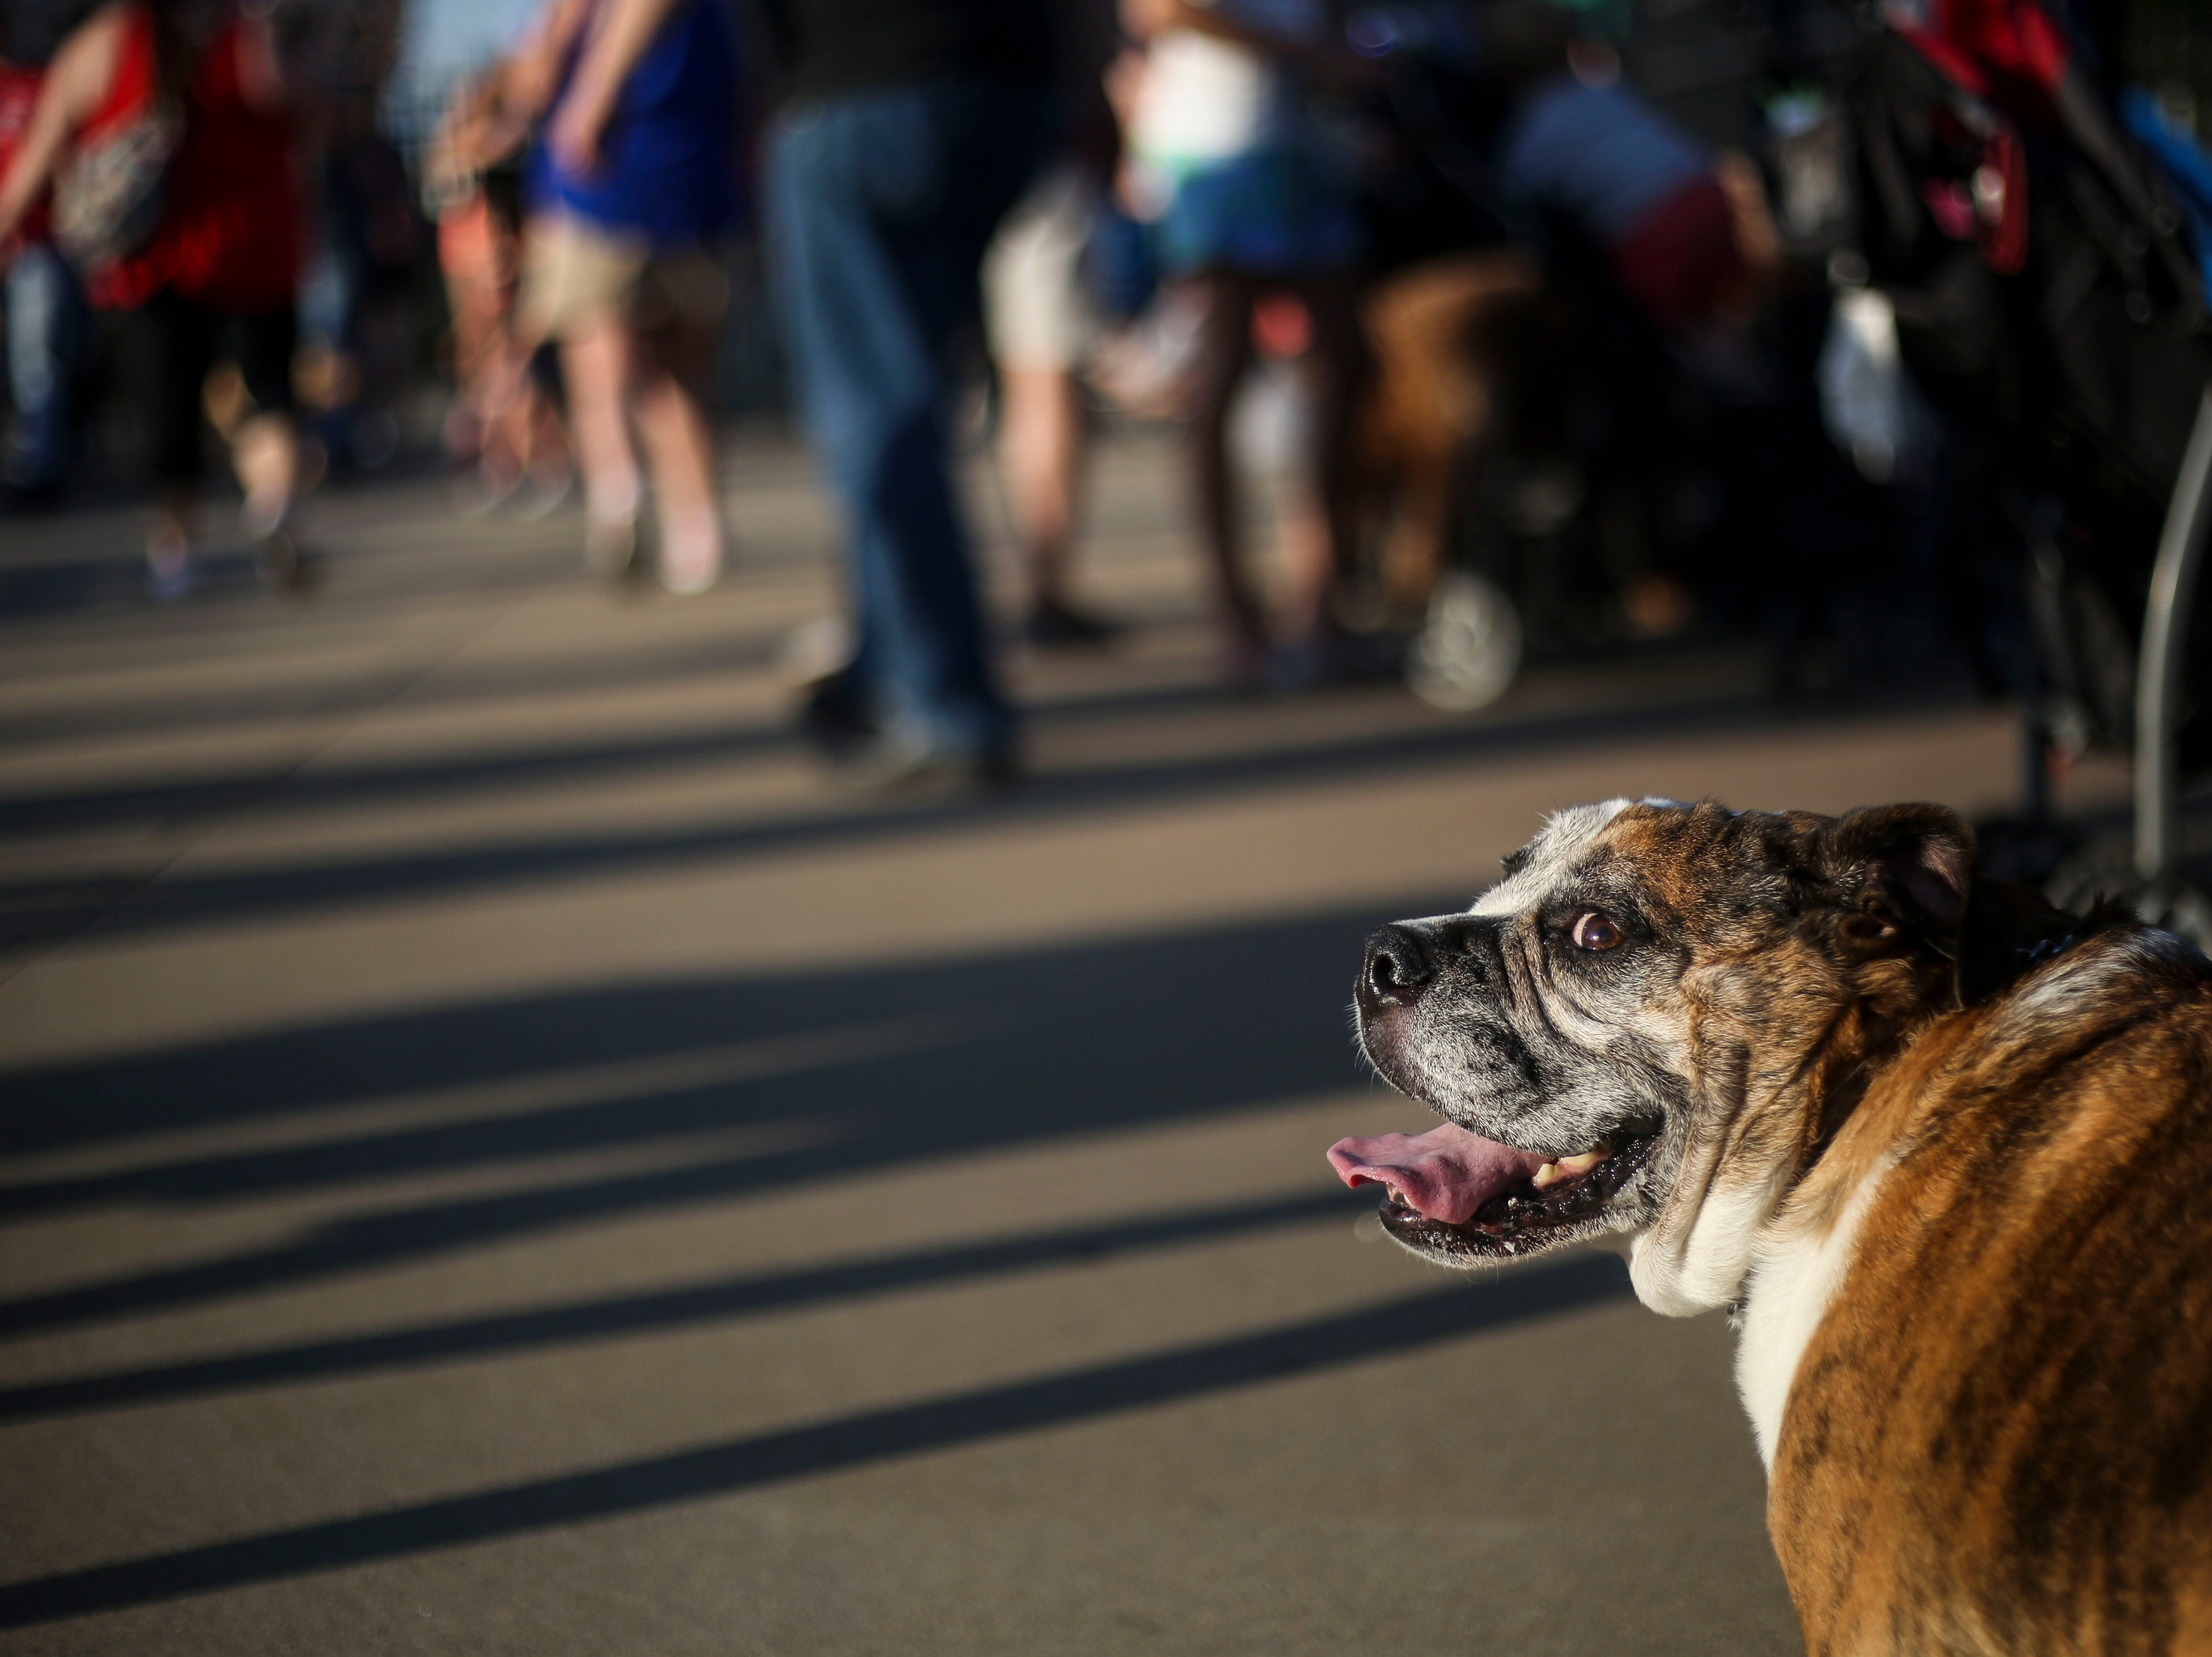 Louie the bulldog beagle mix watches other dogs walk past during the Louisville Bats v. Syracuse Mets game during Dog Day Nights at Louisville Slugger Field in downtown Louisville, Ky. on Tuesday, May 7, 2019.